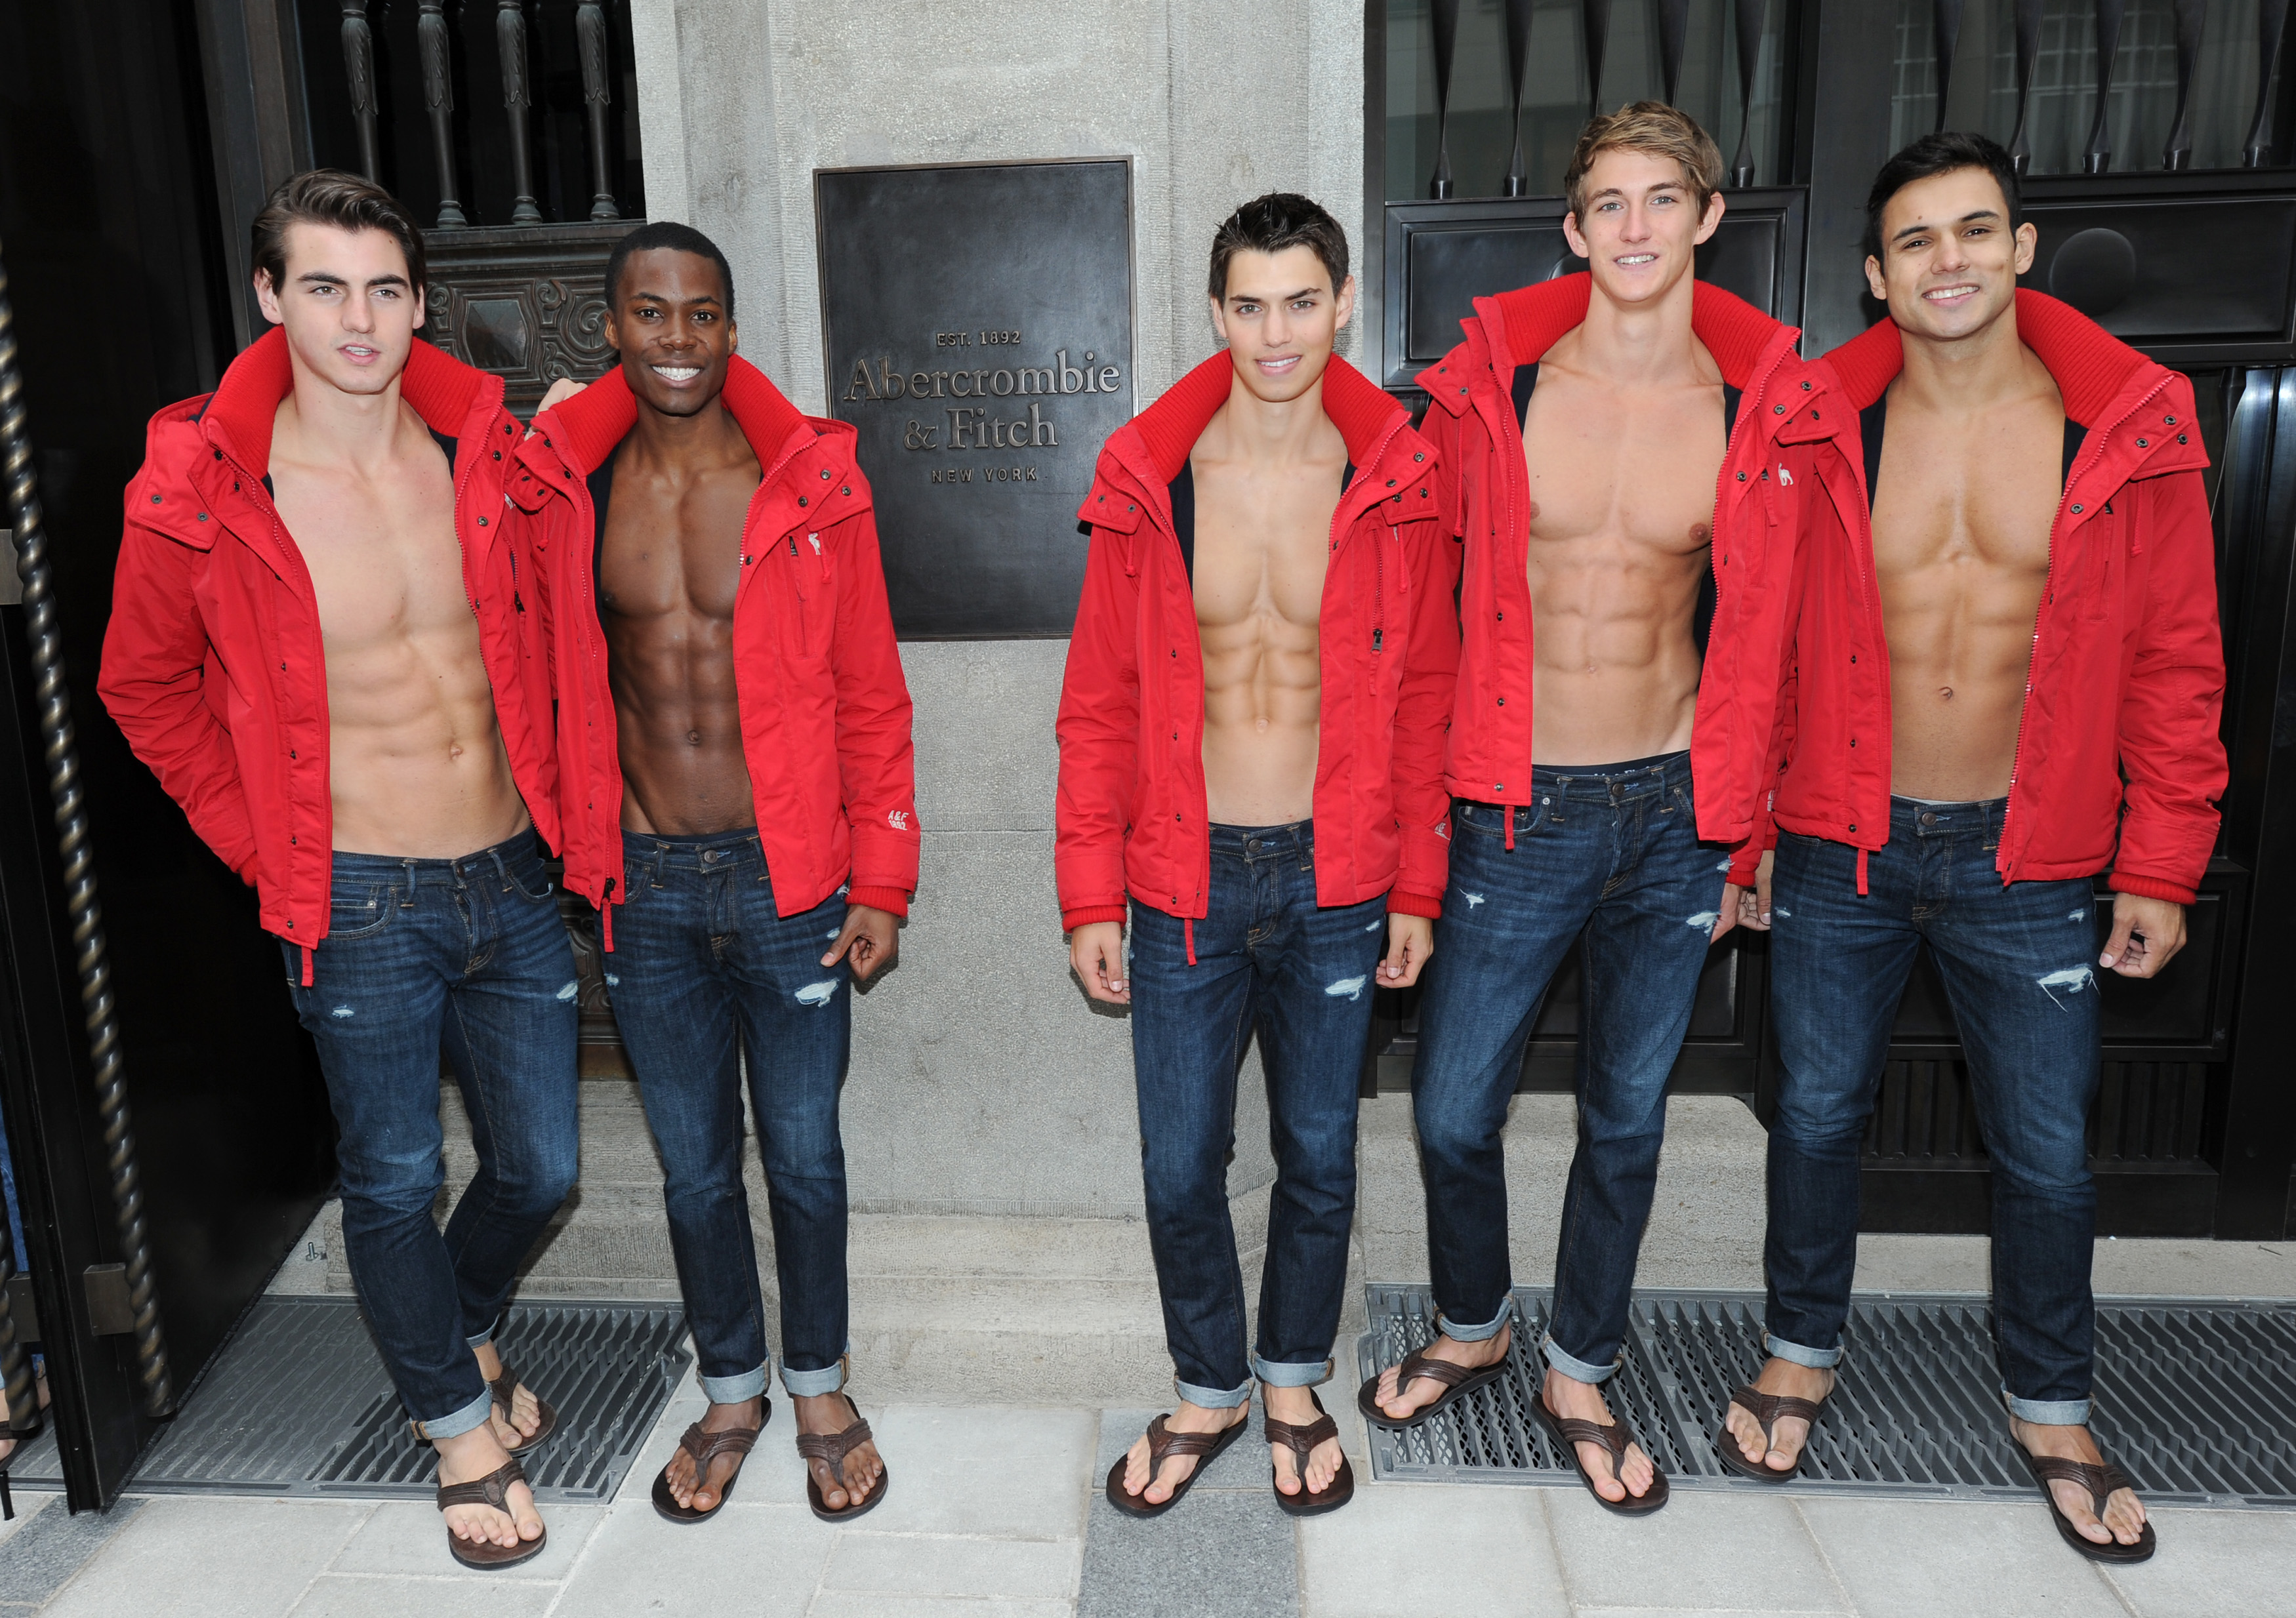 An Ode to the Shirtless Abercrombie & Fitch Models